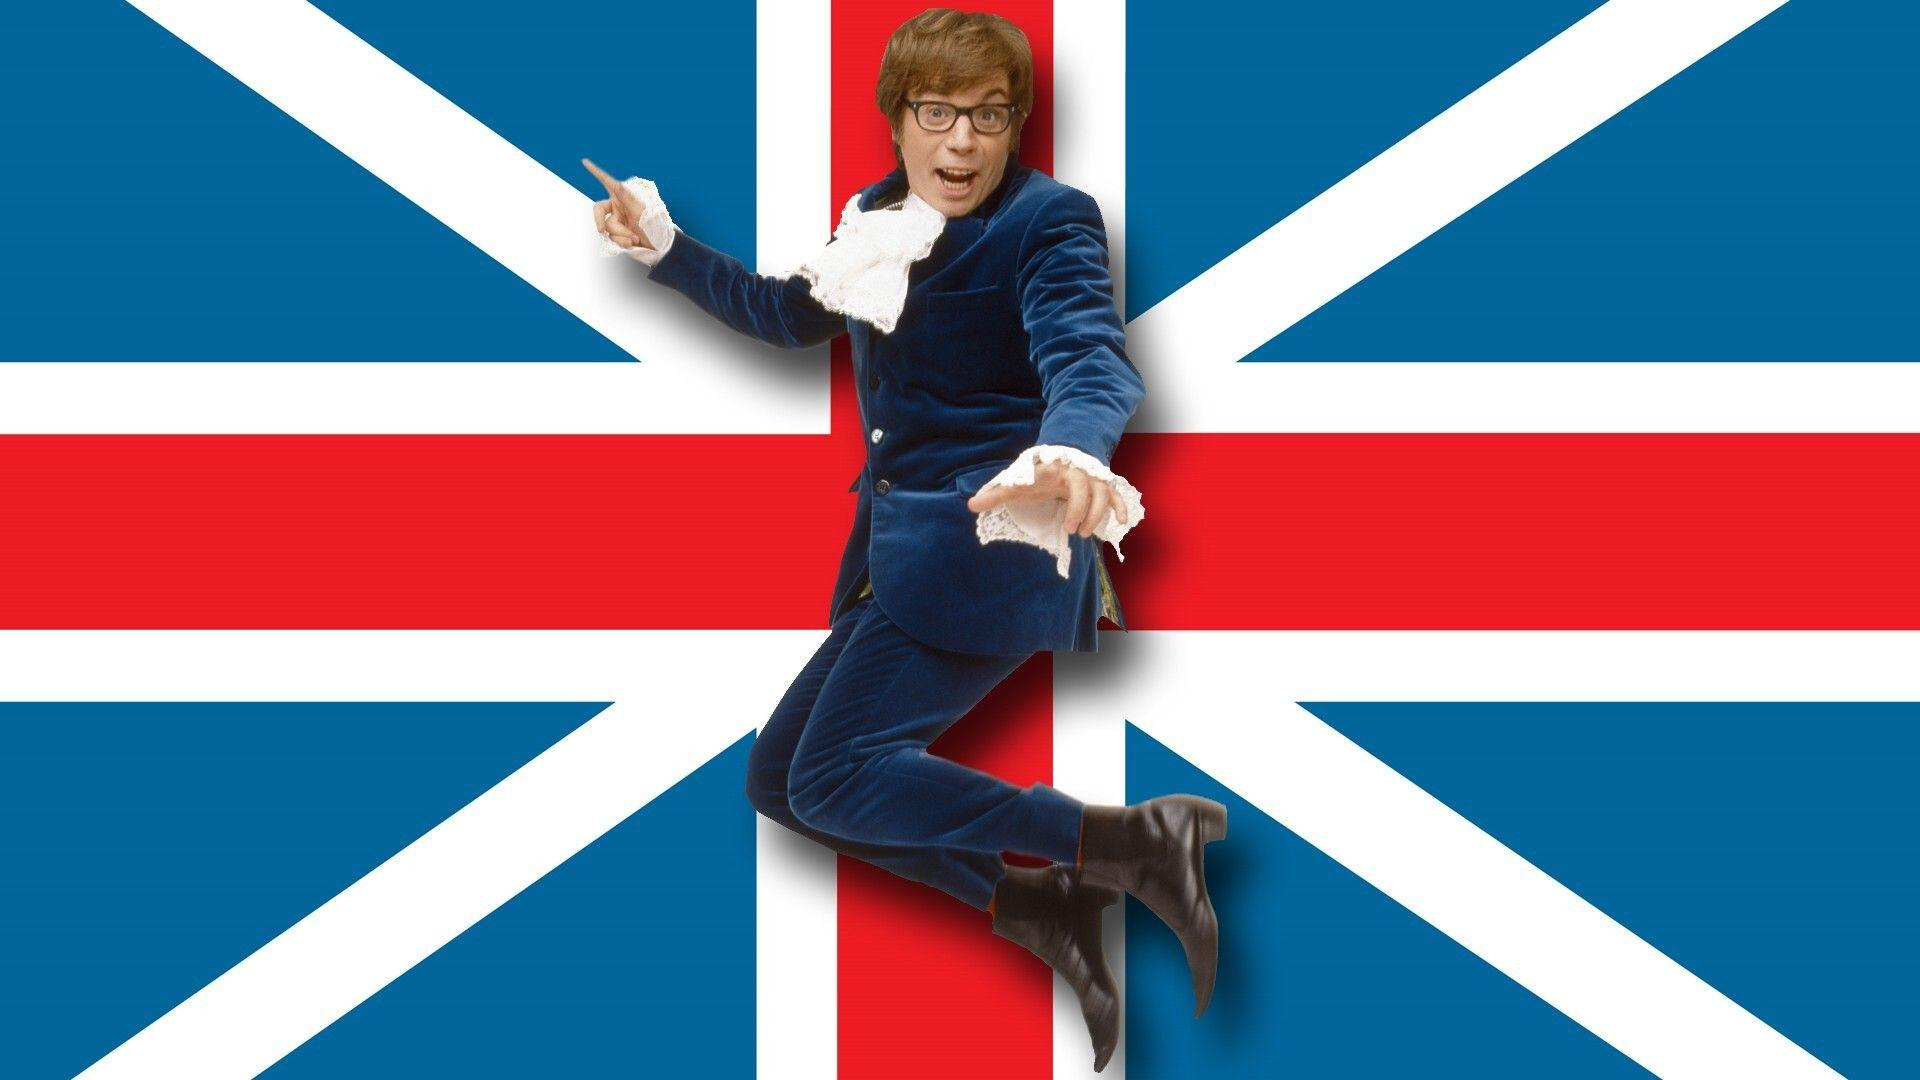 4 Austin Powers: The Spy Who Shagged Me HD Wallpapers